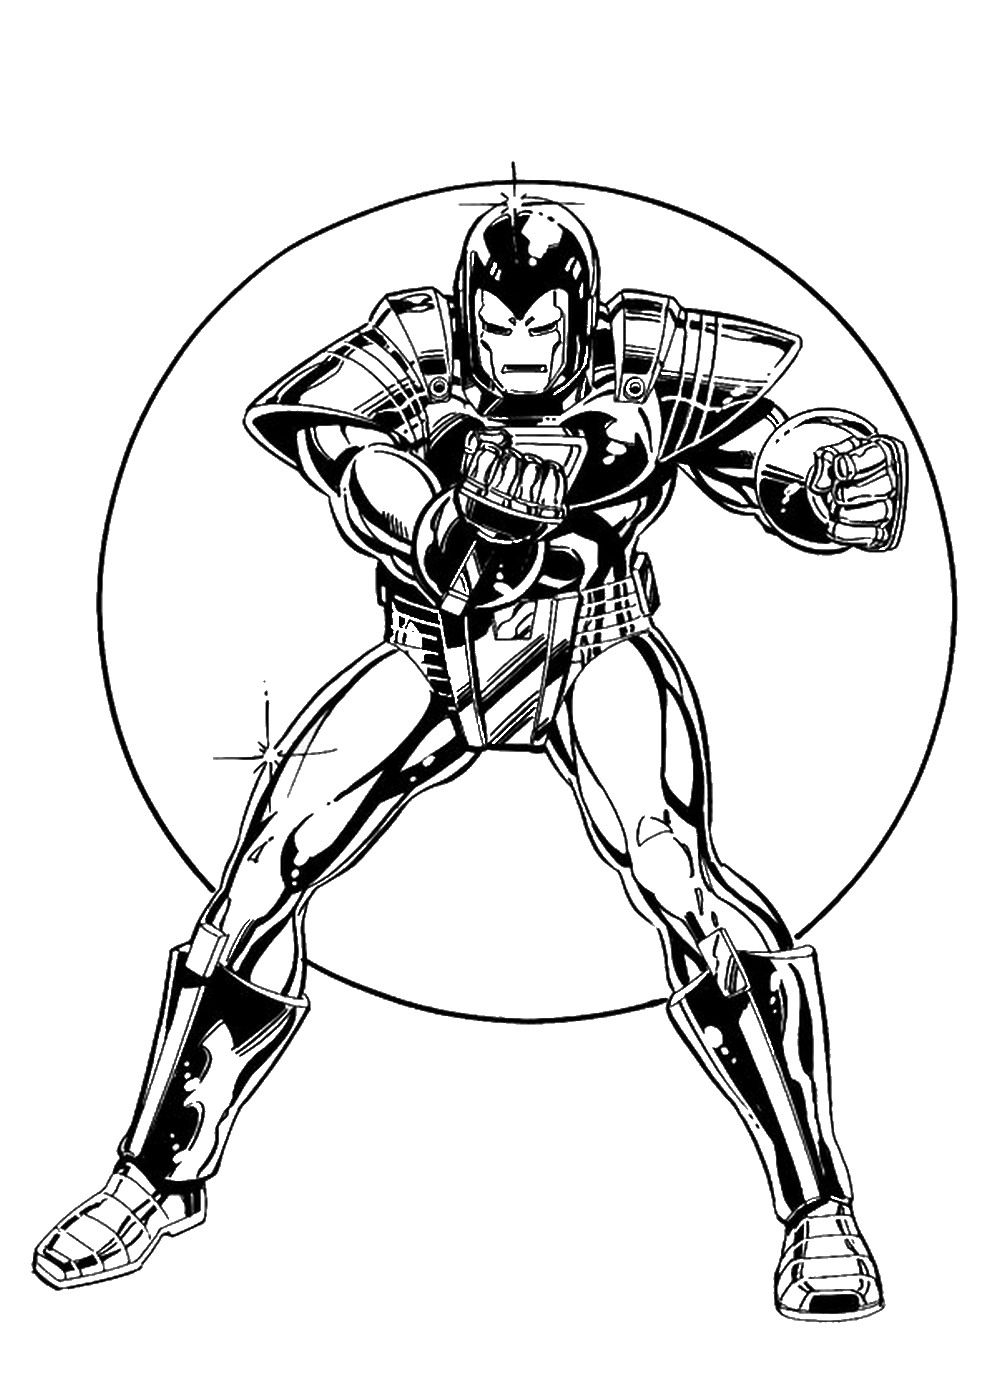 ironman images to color get this printable ironman coloring pages 91060 cartoon ironman images color to